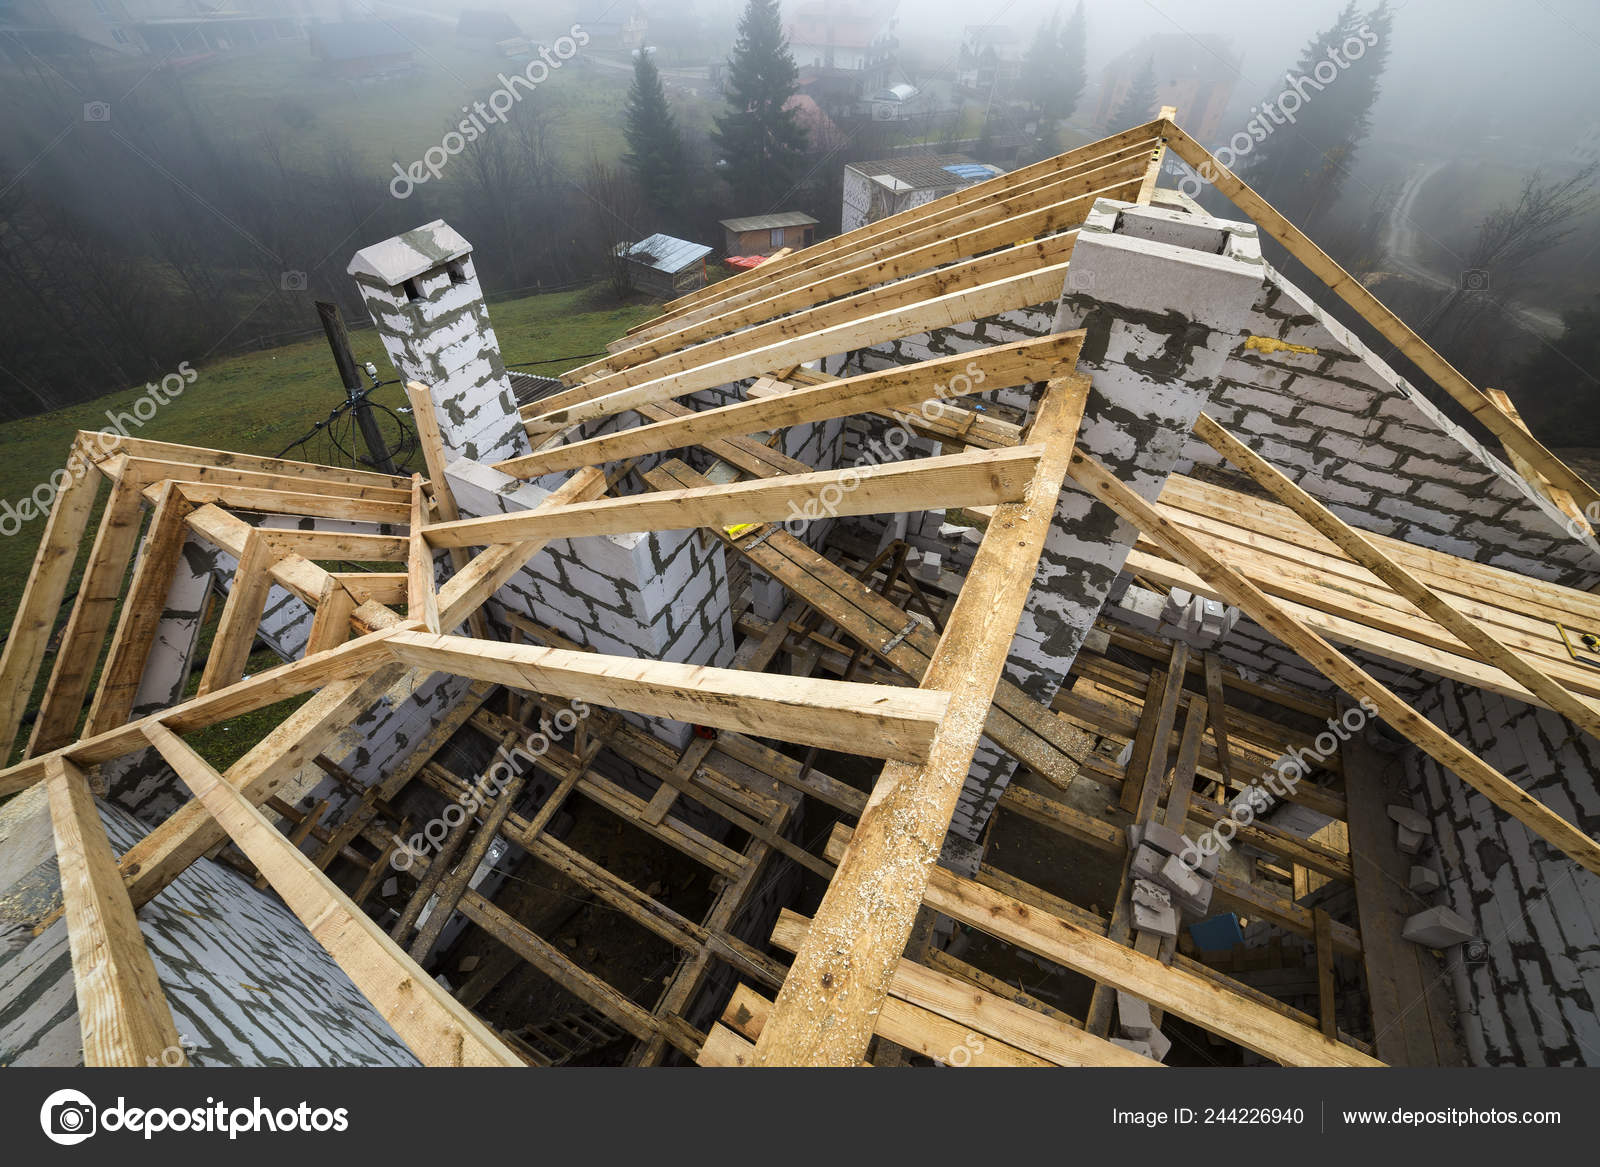 Top View Roof Frame Wooden Lumber Beams Planks Walls Made Stock